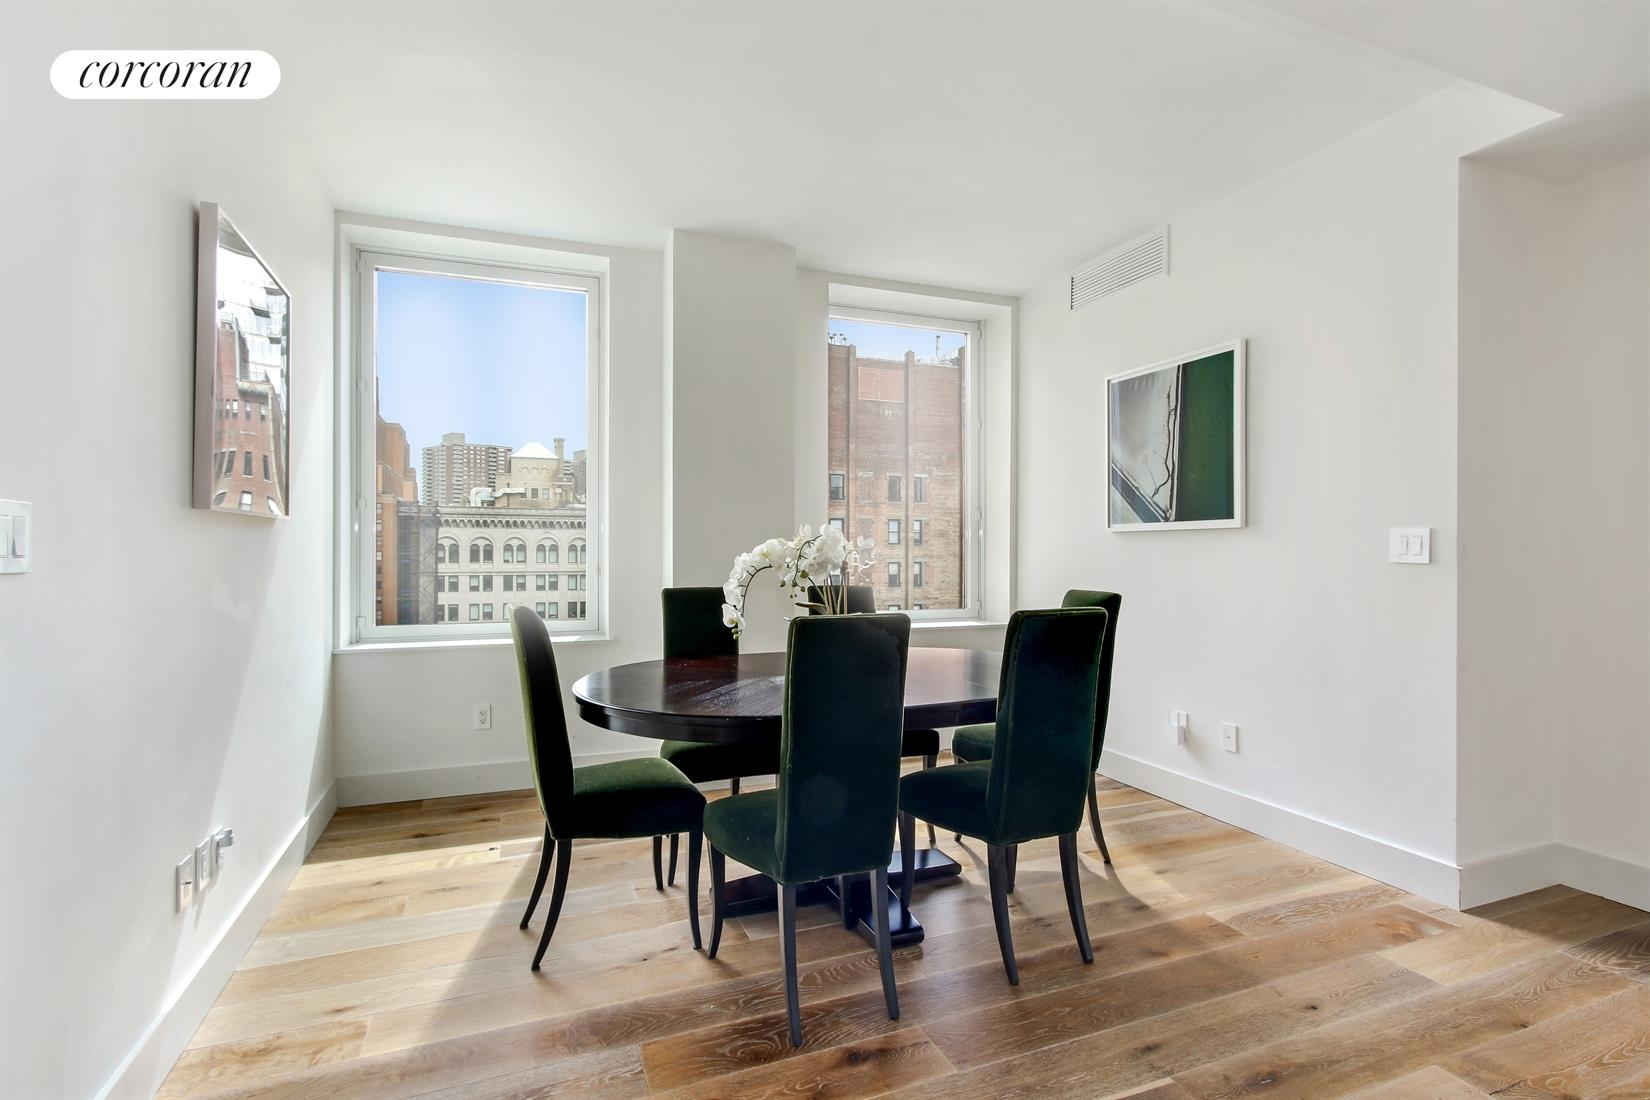 Corcoran 93 worth st apt 1006 tribeca real estate for Homes for sale in tribeca